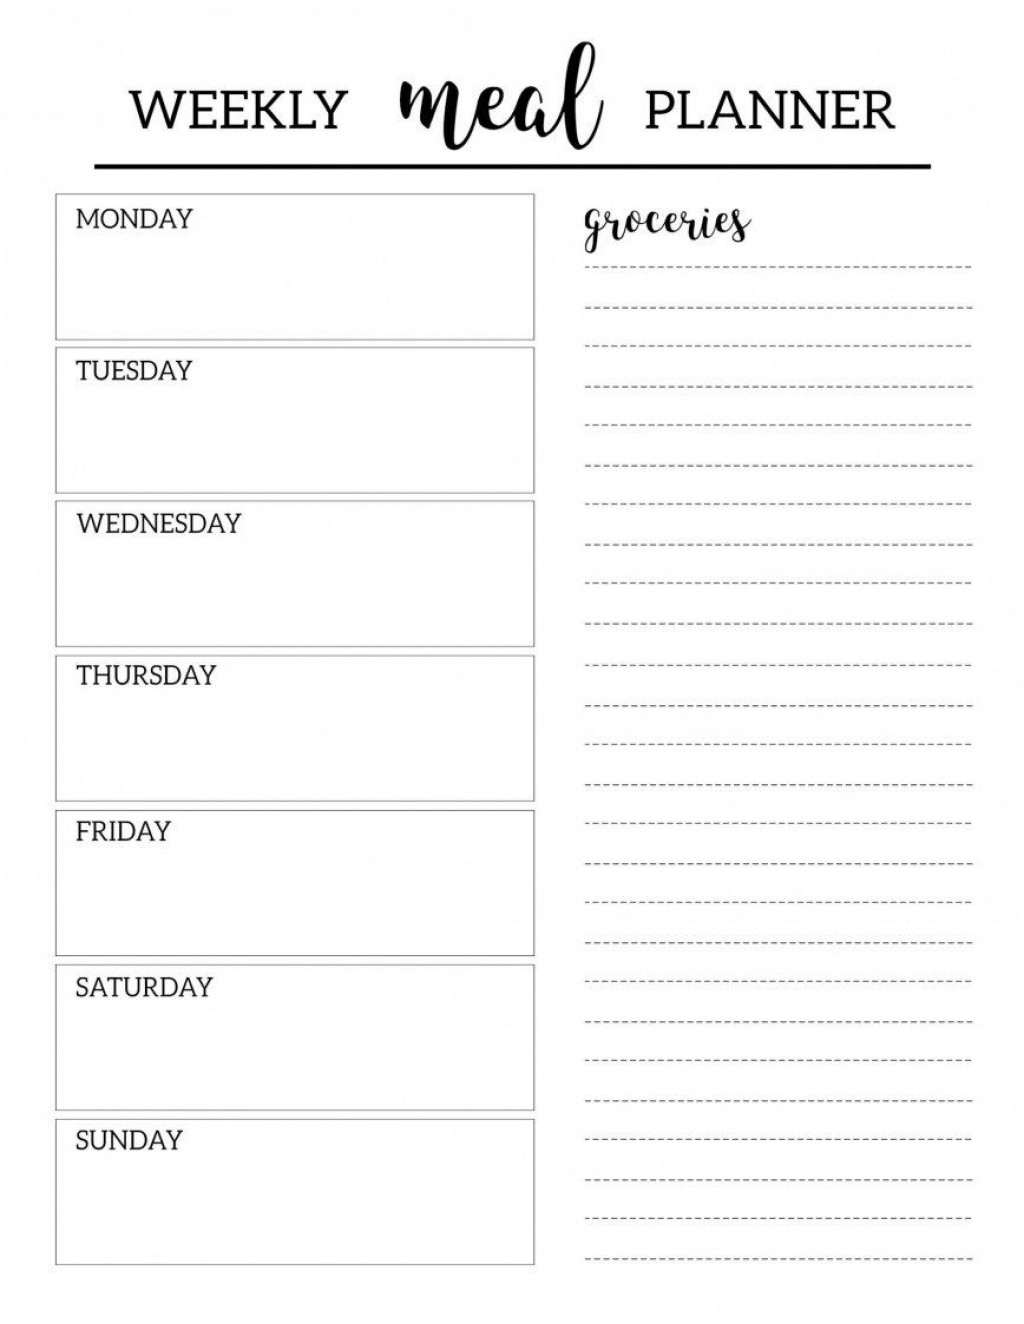 003 Top Free Food Planner Template Highest Clarity  Printable Weekly Meal With Grocery List Diary Download Editable WordLarge